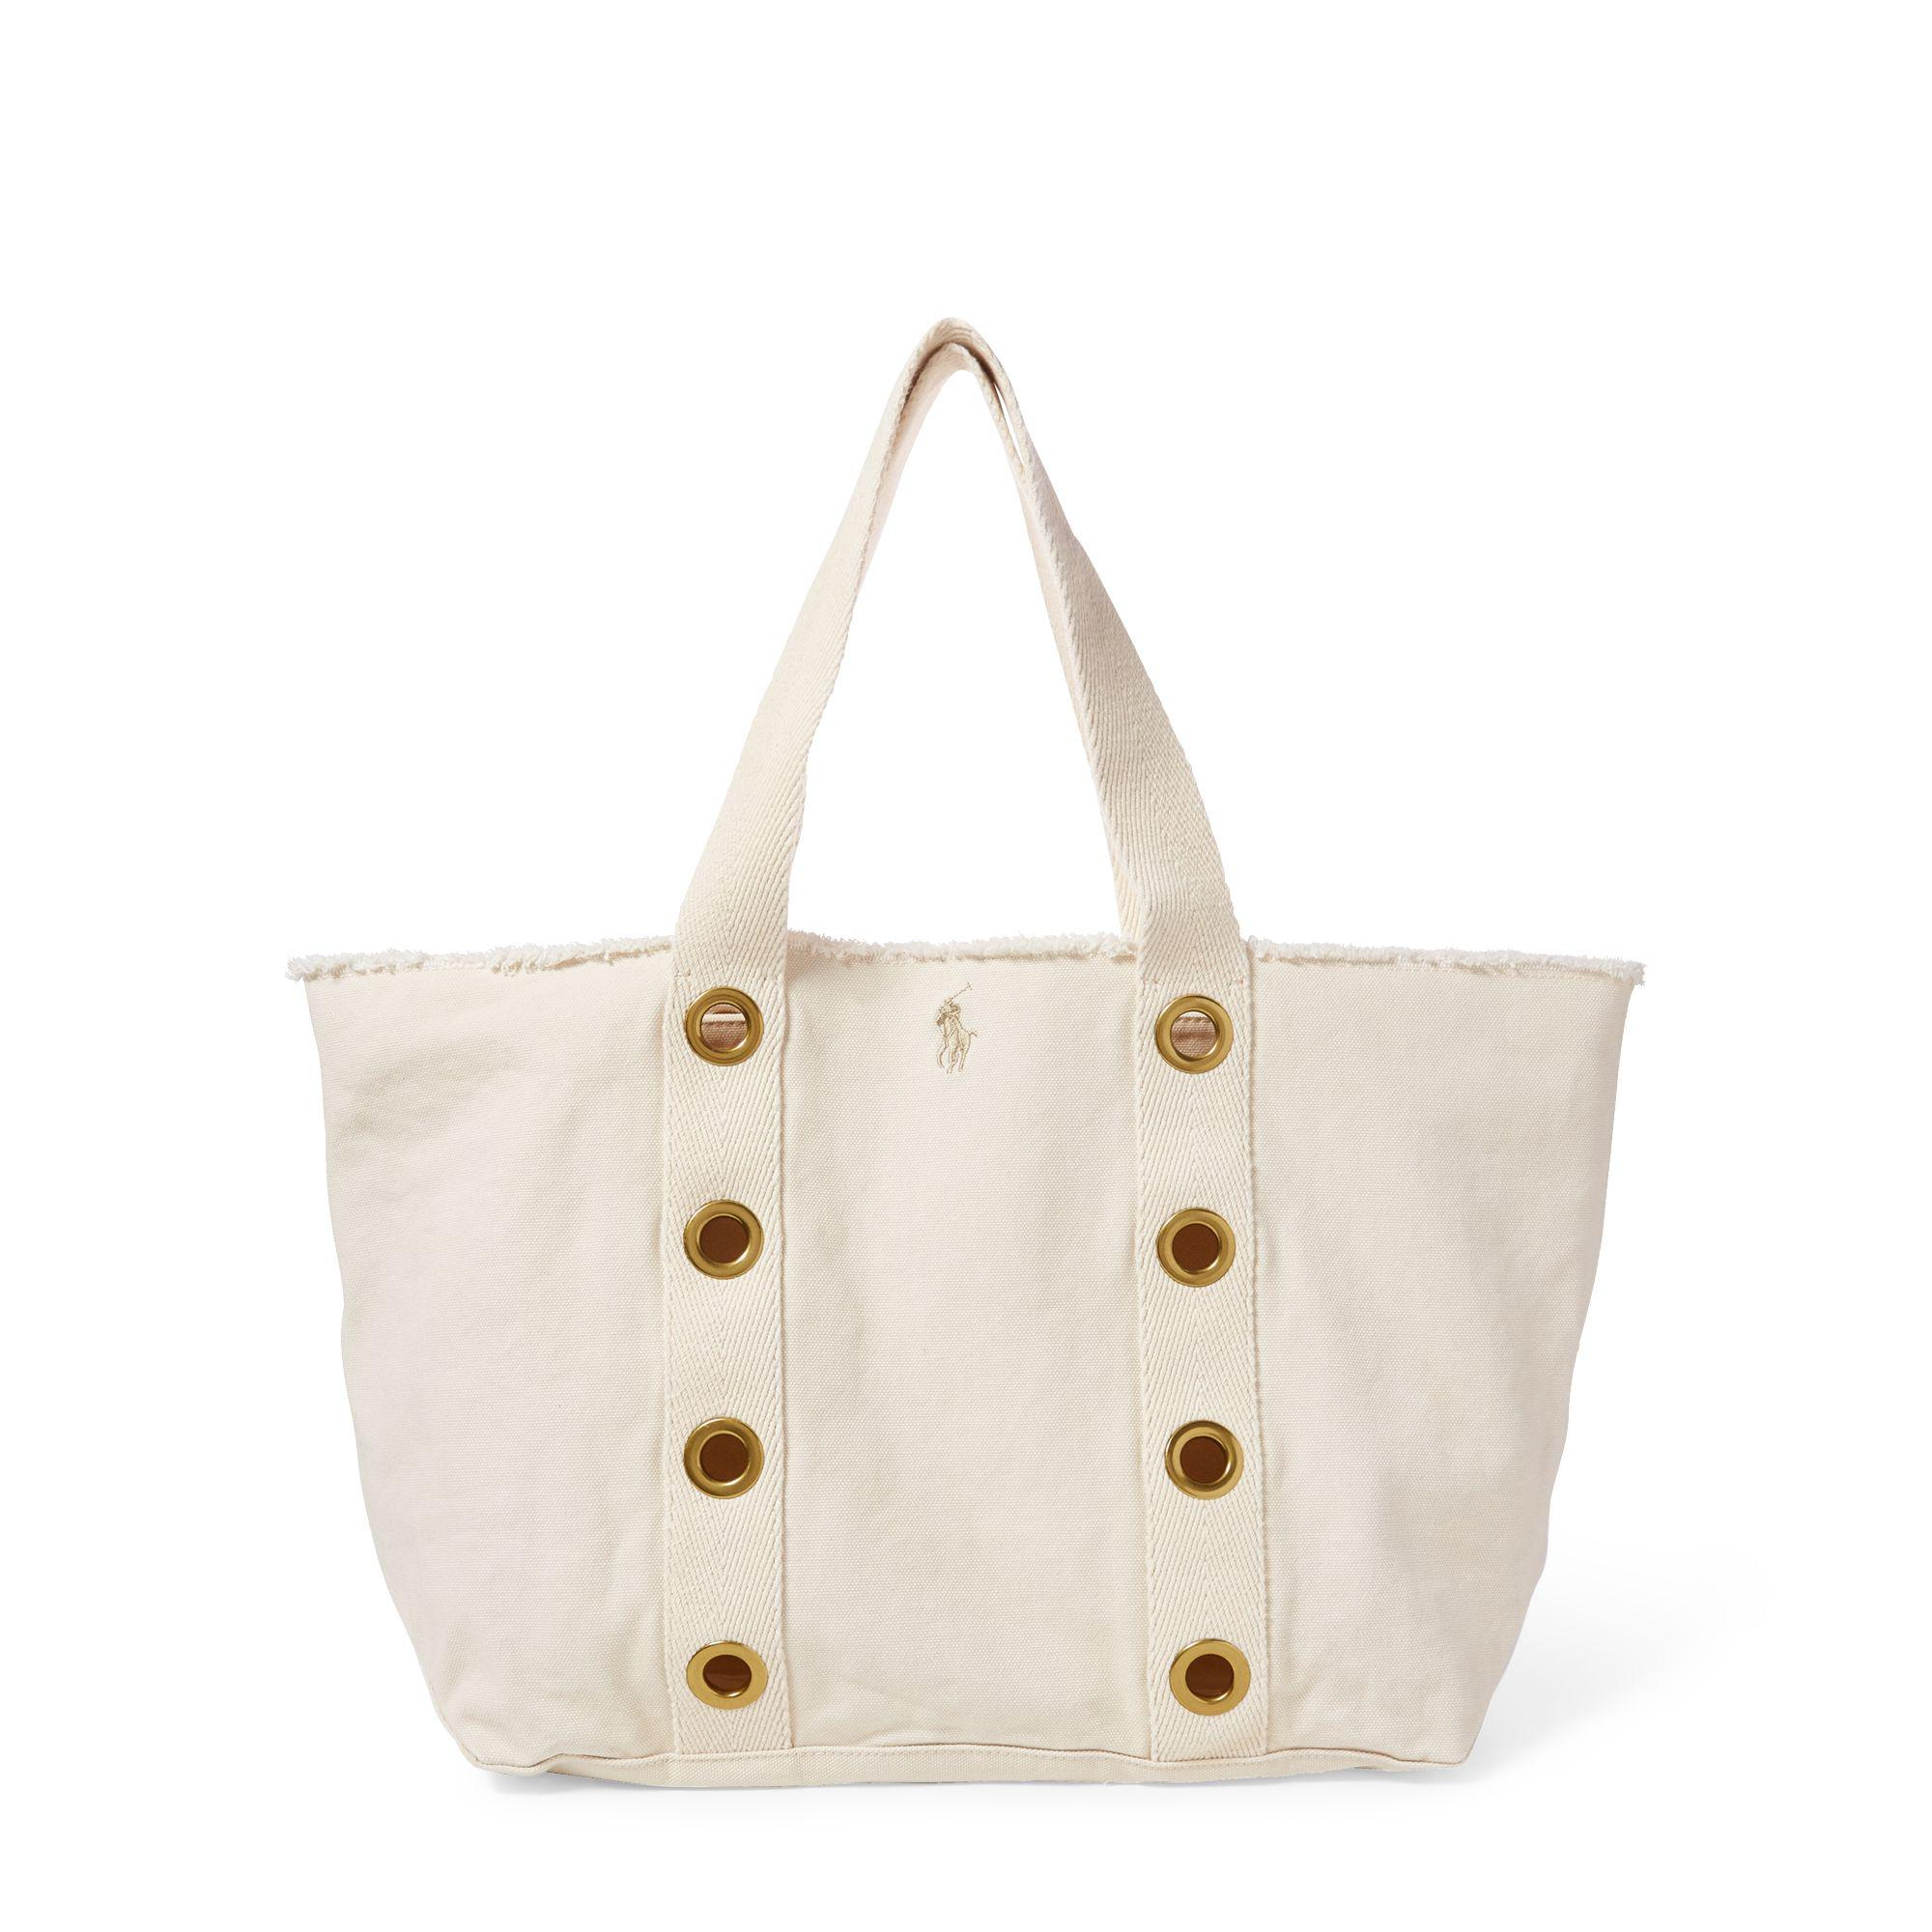 Lyst - Polo Ralph Lauren Grommet-trim Large Canvas Tote in Natural 4b61e579c8f78